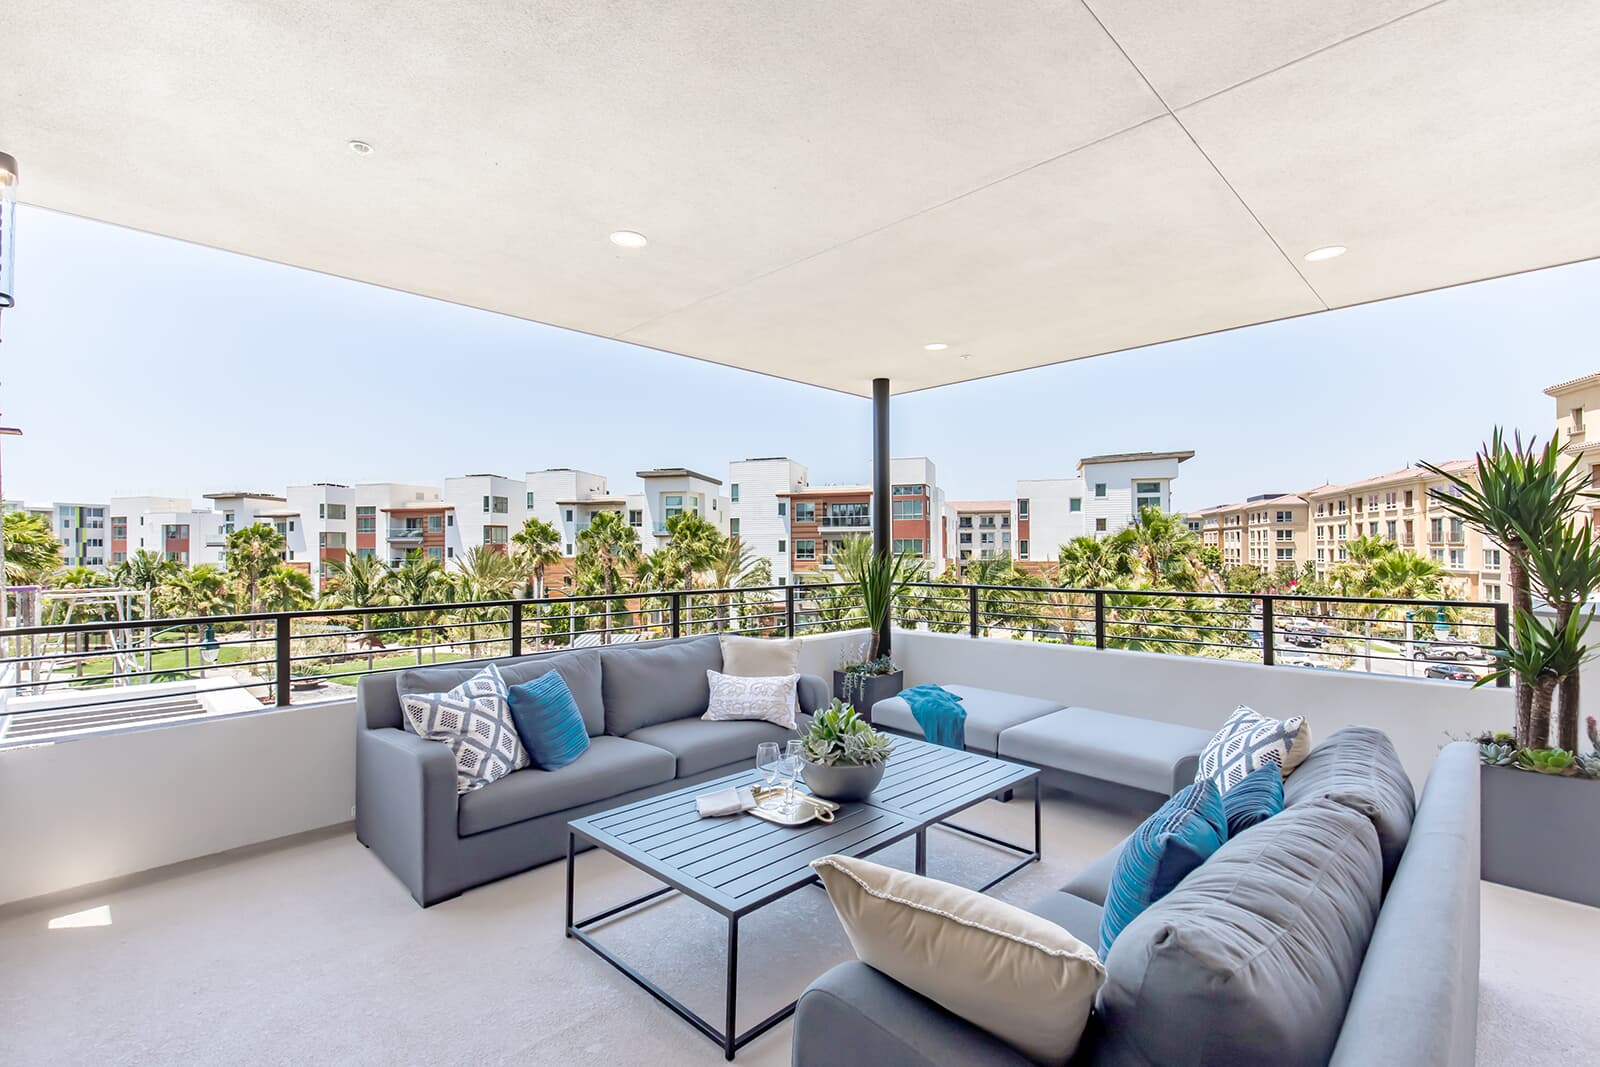 Residence 2 covered patio | The Collection at Playa Vista in Los Angeles, CA | Brookfield Residential